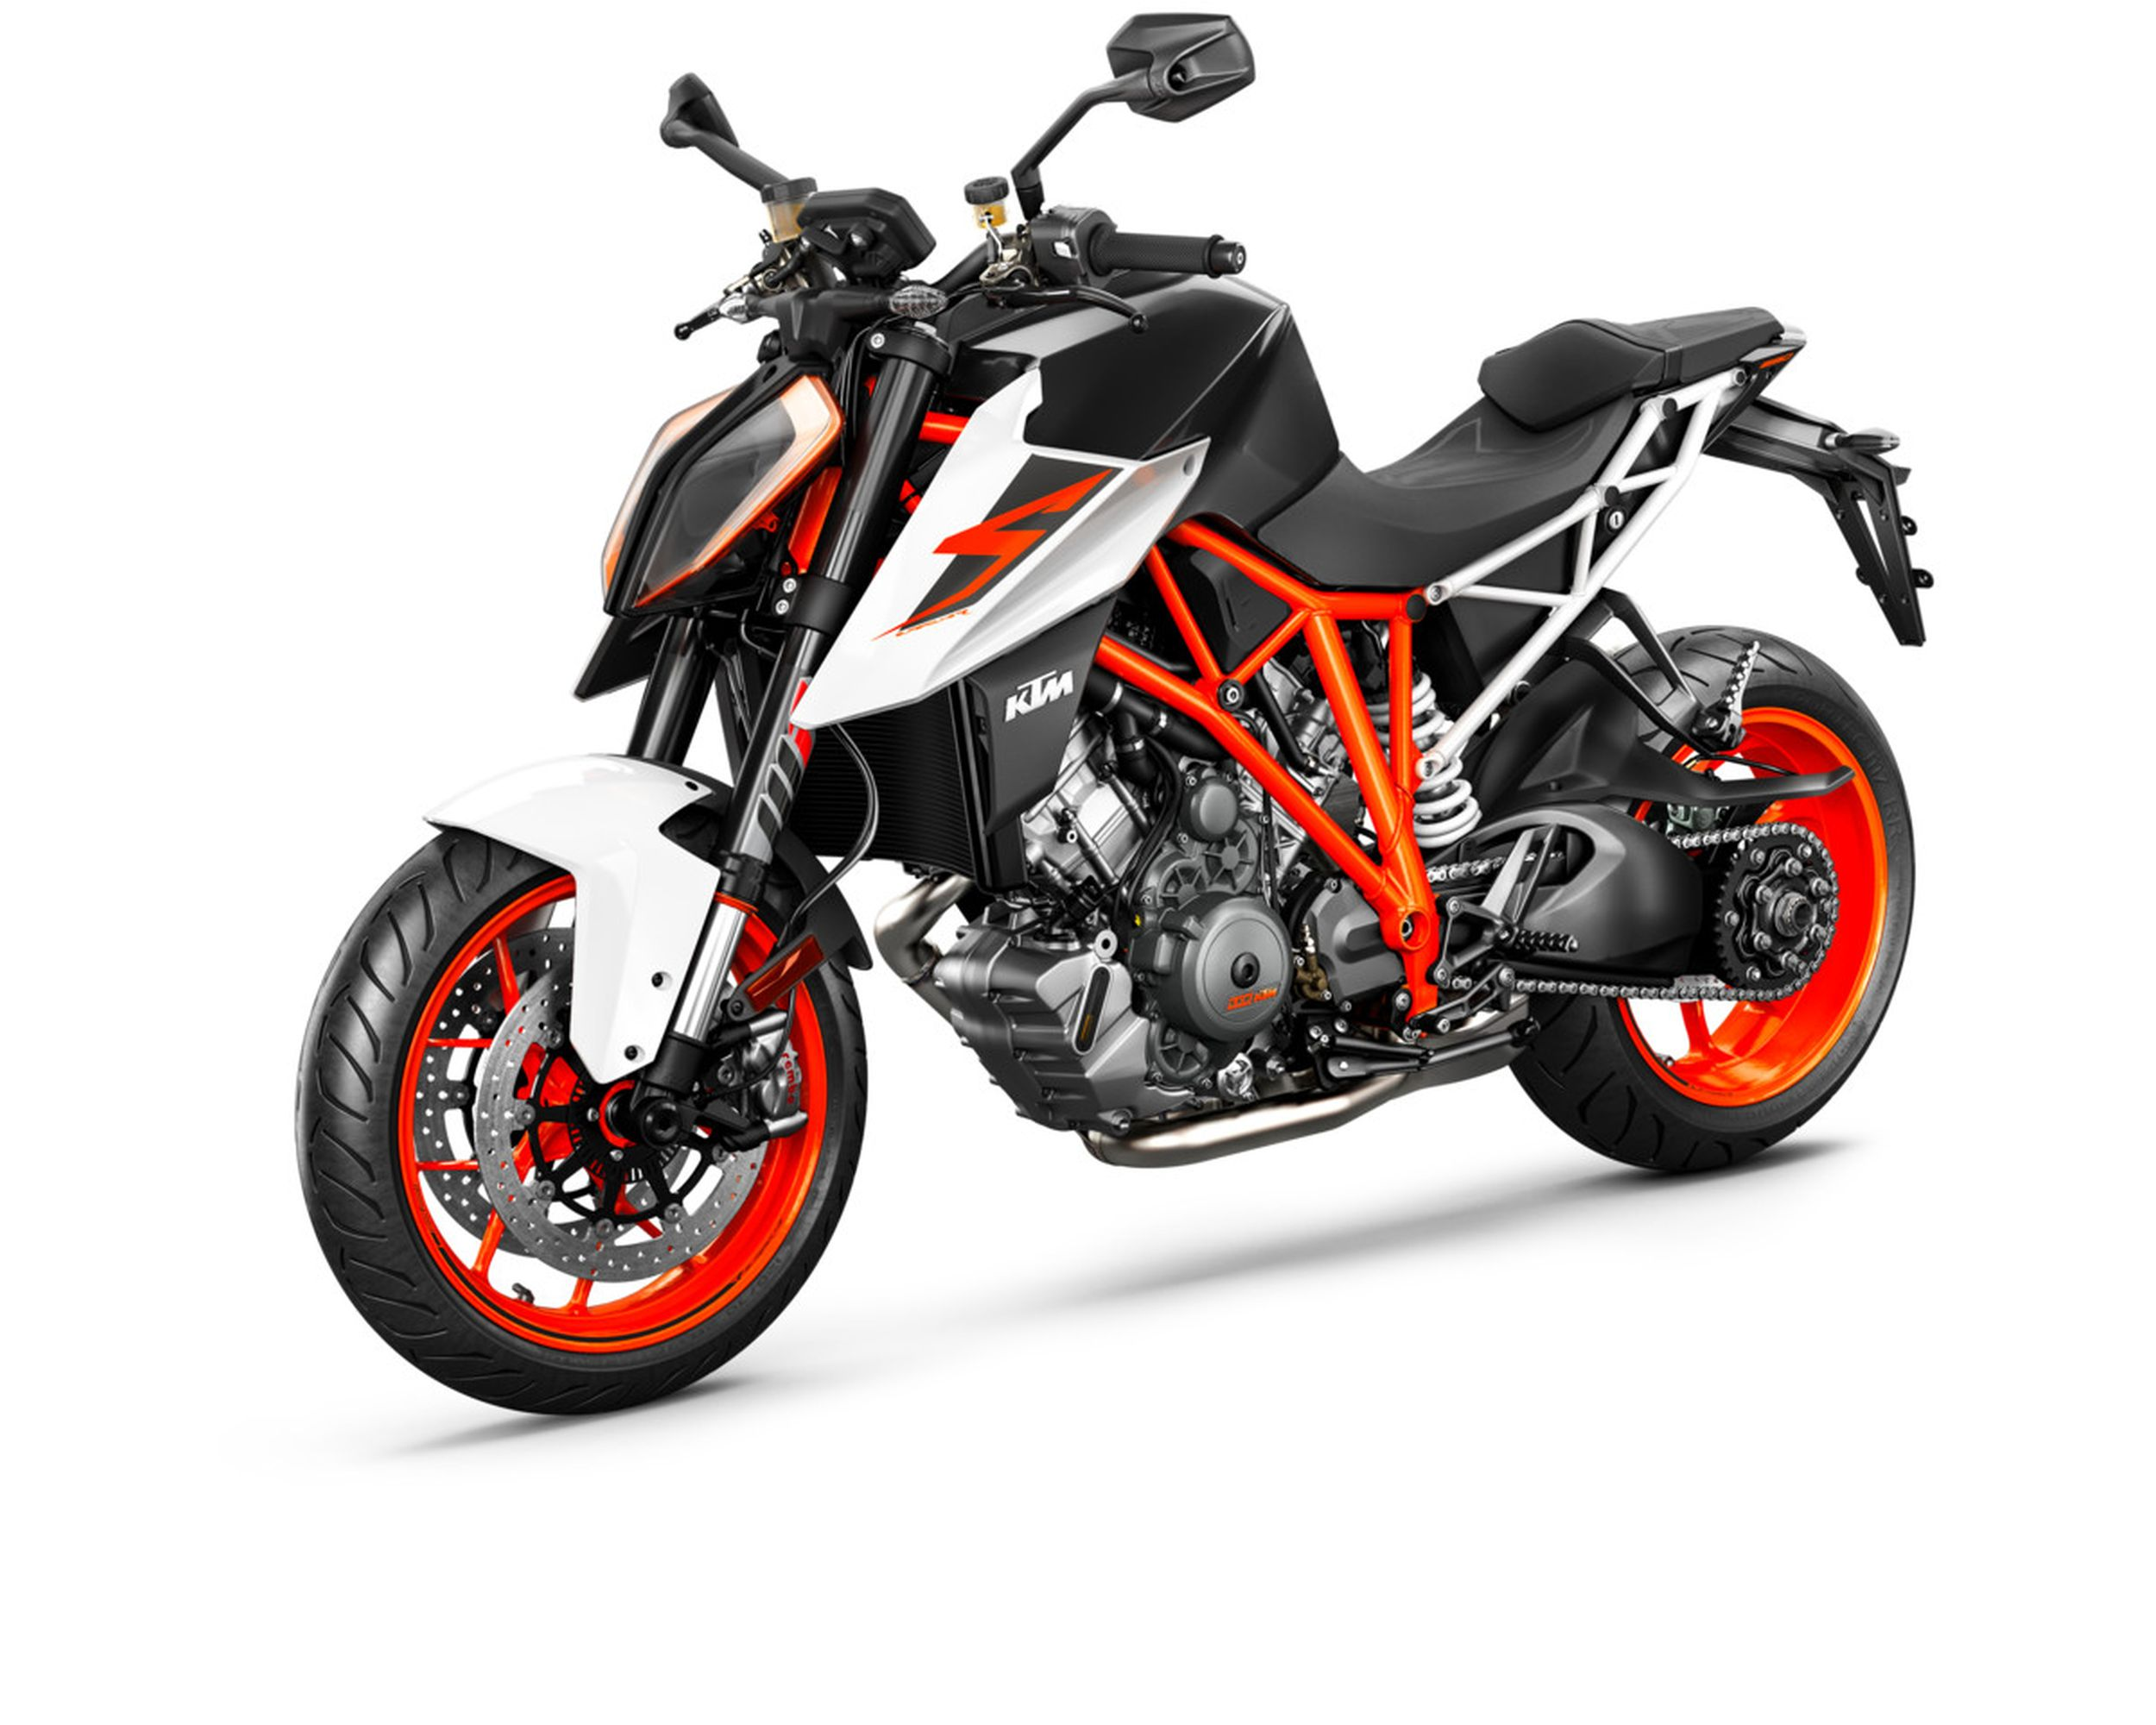 ktm 1290 super duke r test gebrauchte bilder. Black Bedroom Furniture Sets. Home Design Ideas